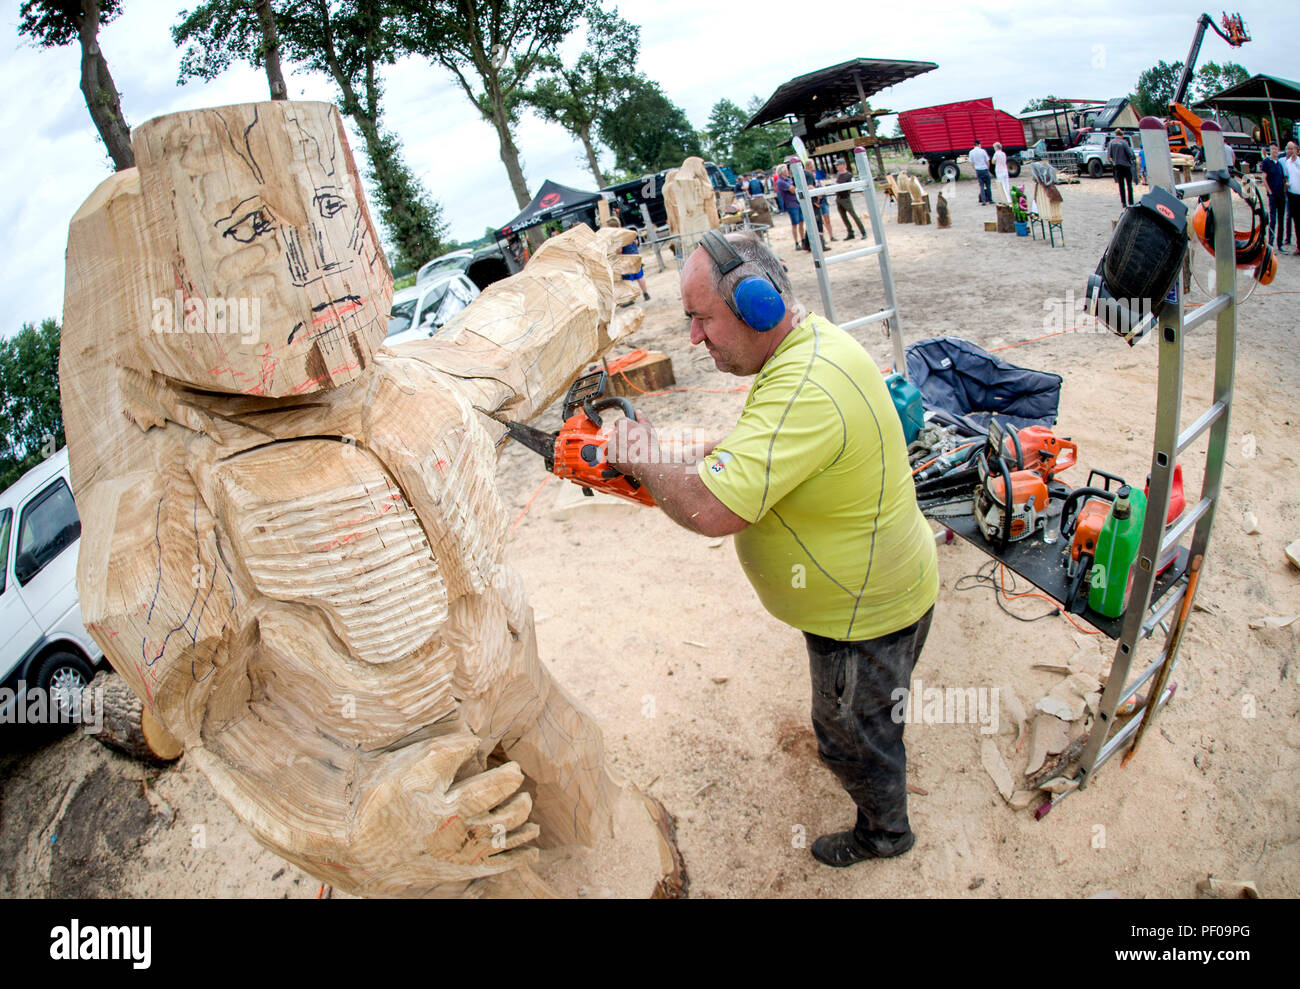 Saterland, Germany. 18th Aug, 2018. Wood artist Bernd Voigt from the Erzgebirge is working on a large wooden figure during the Northwest German championship in chainsaw carving. A figure is quickly carved out of wood with a chain saw during the discipline of speed carving. The wooden figures created in this way are auctioned off for a good cause. Credit: Hauke-Christian Dittrich/dpa/Alamy Live News - Stock Image